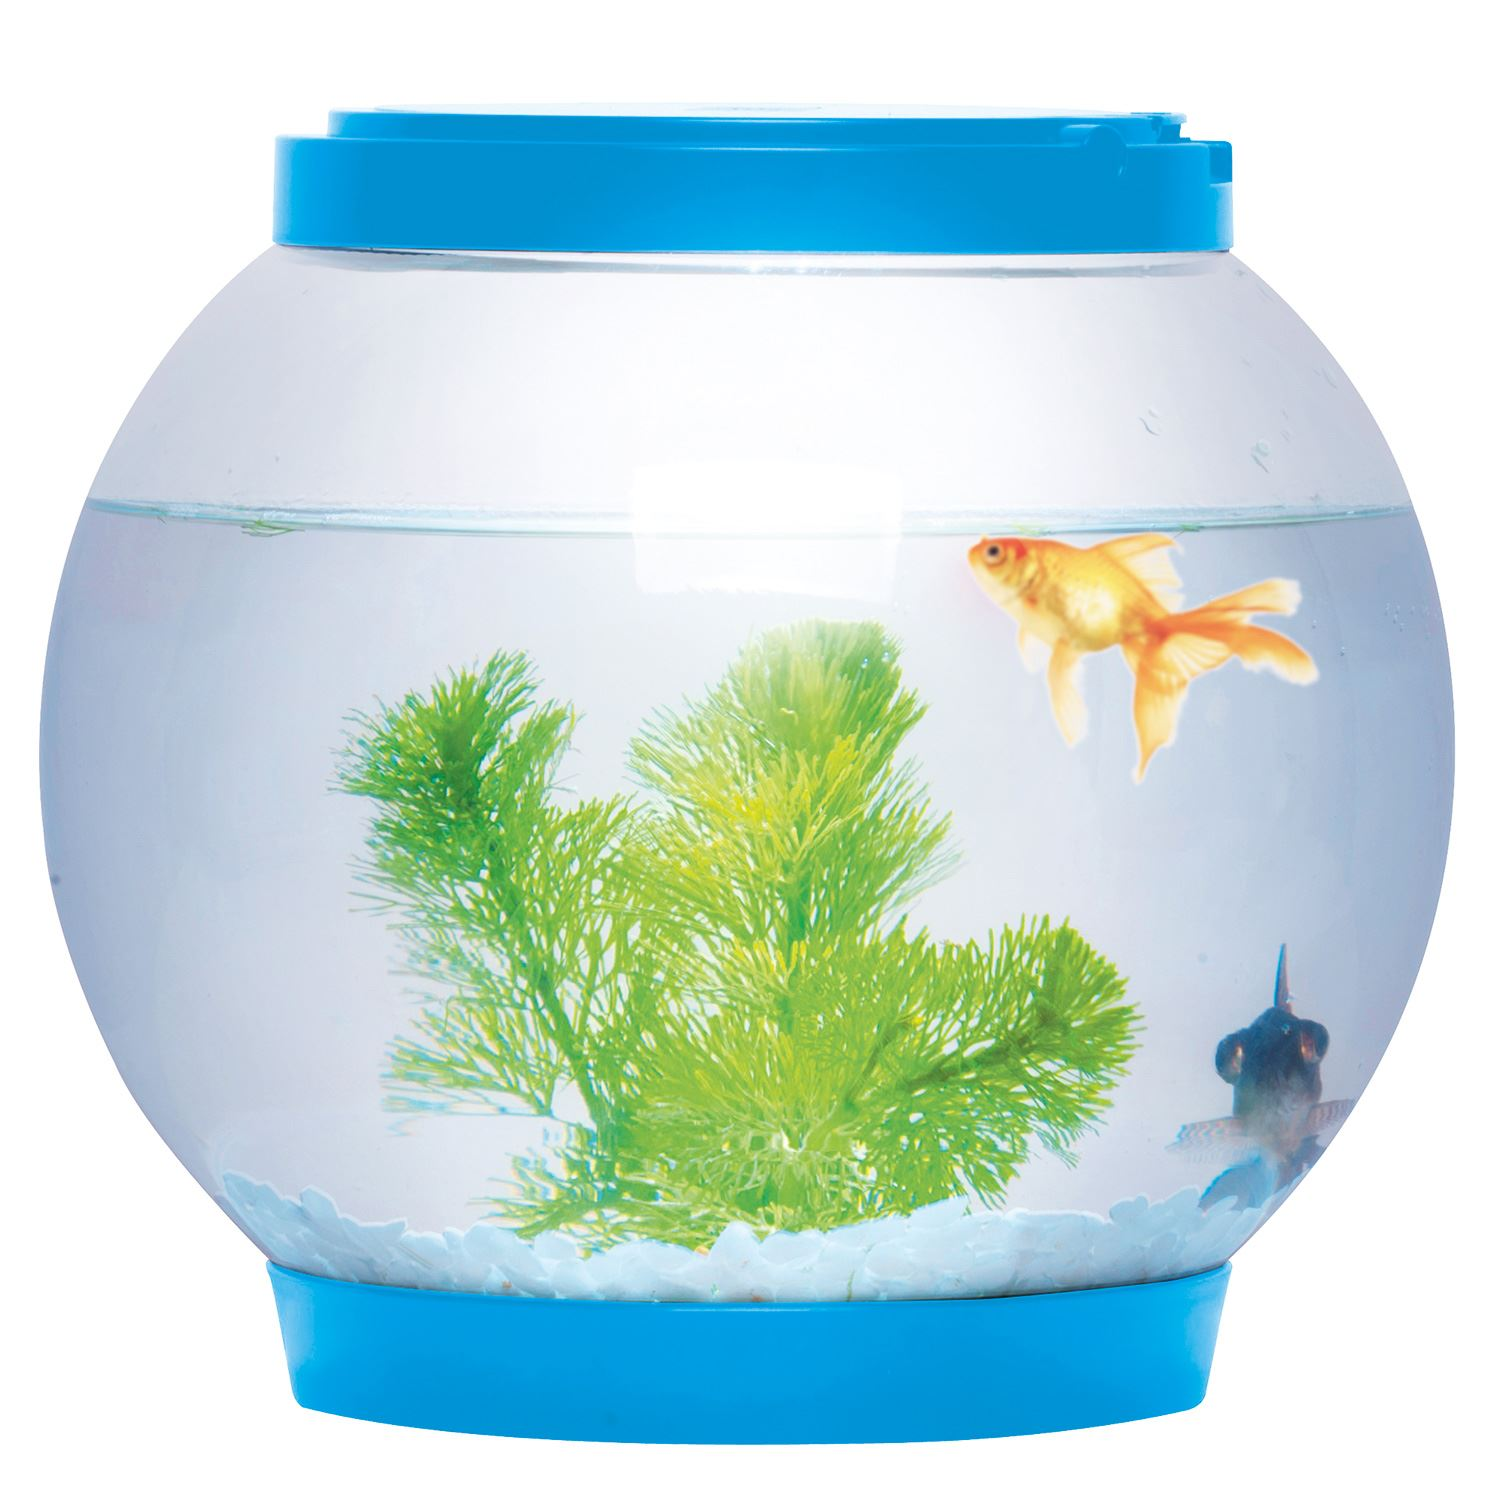 5 litre glass fish bowl led light aquarium goldfish betta for Betta fish tank light